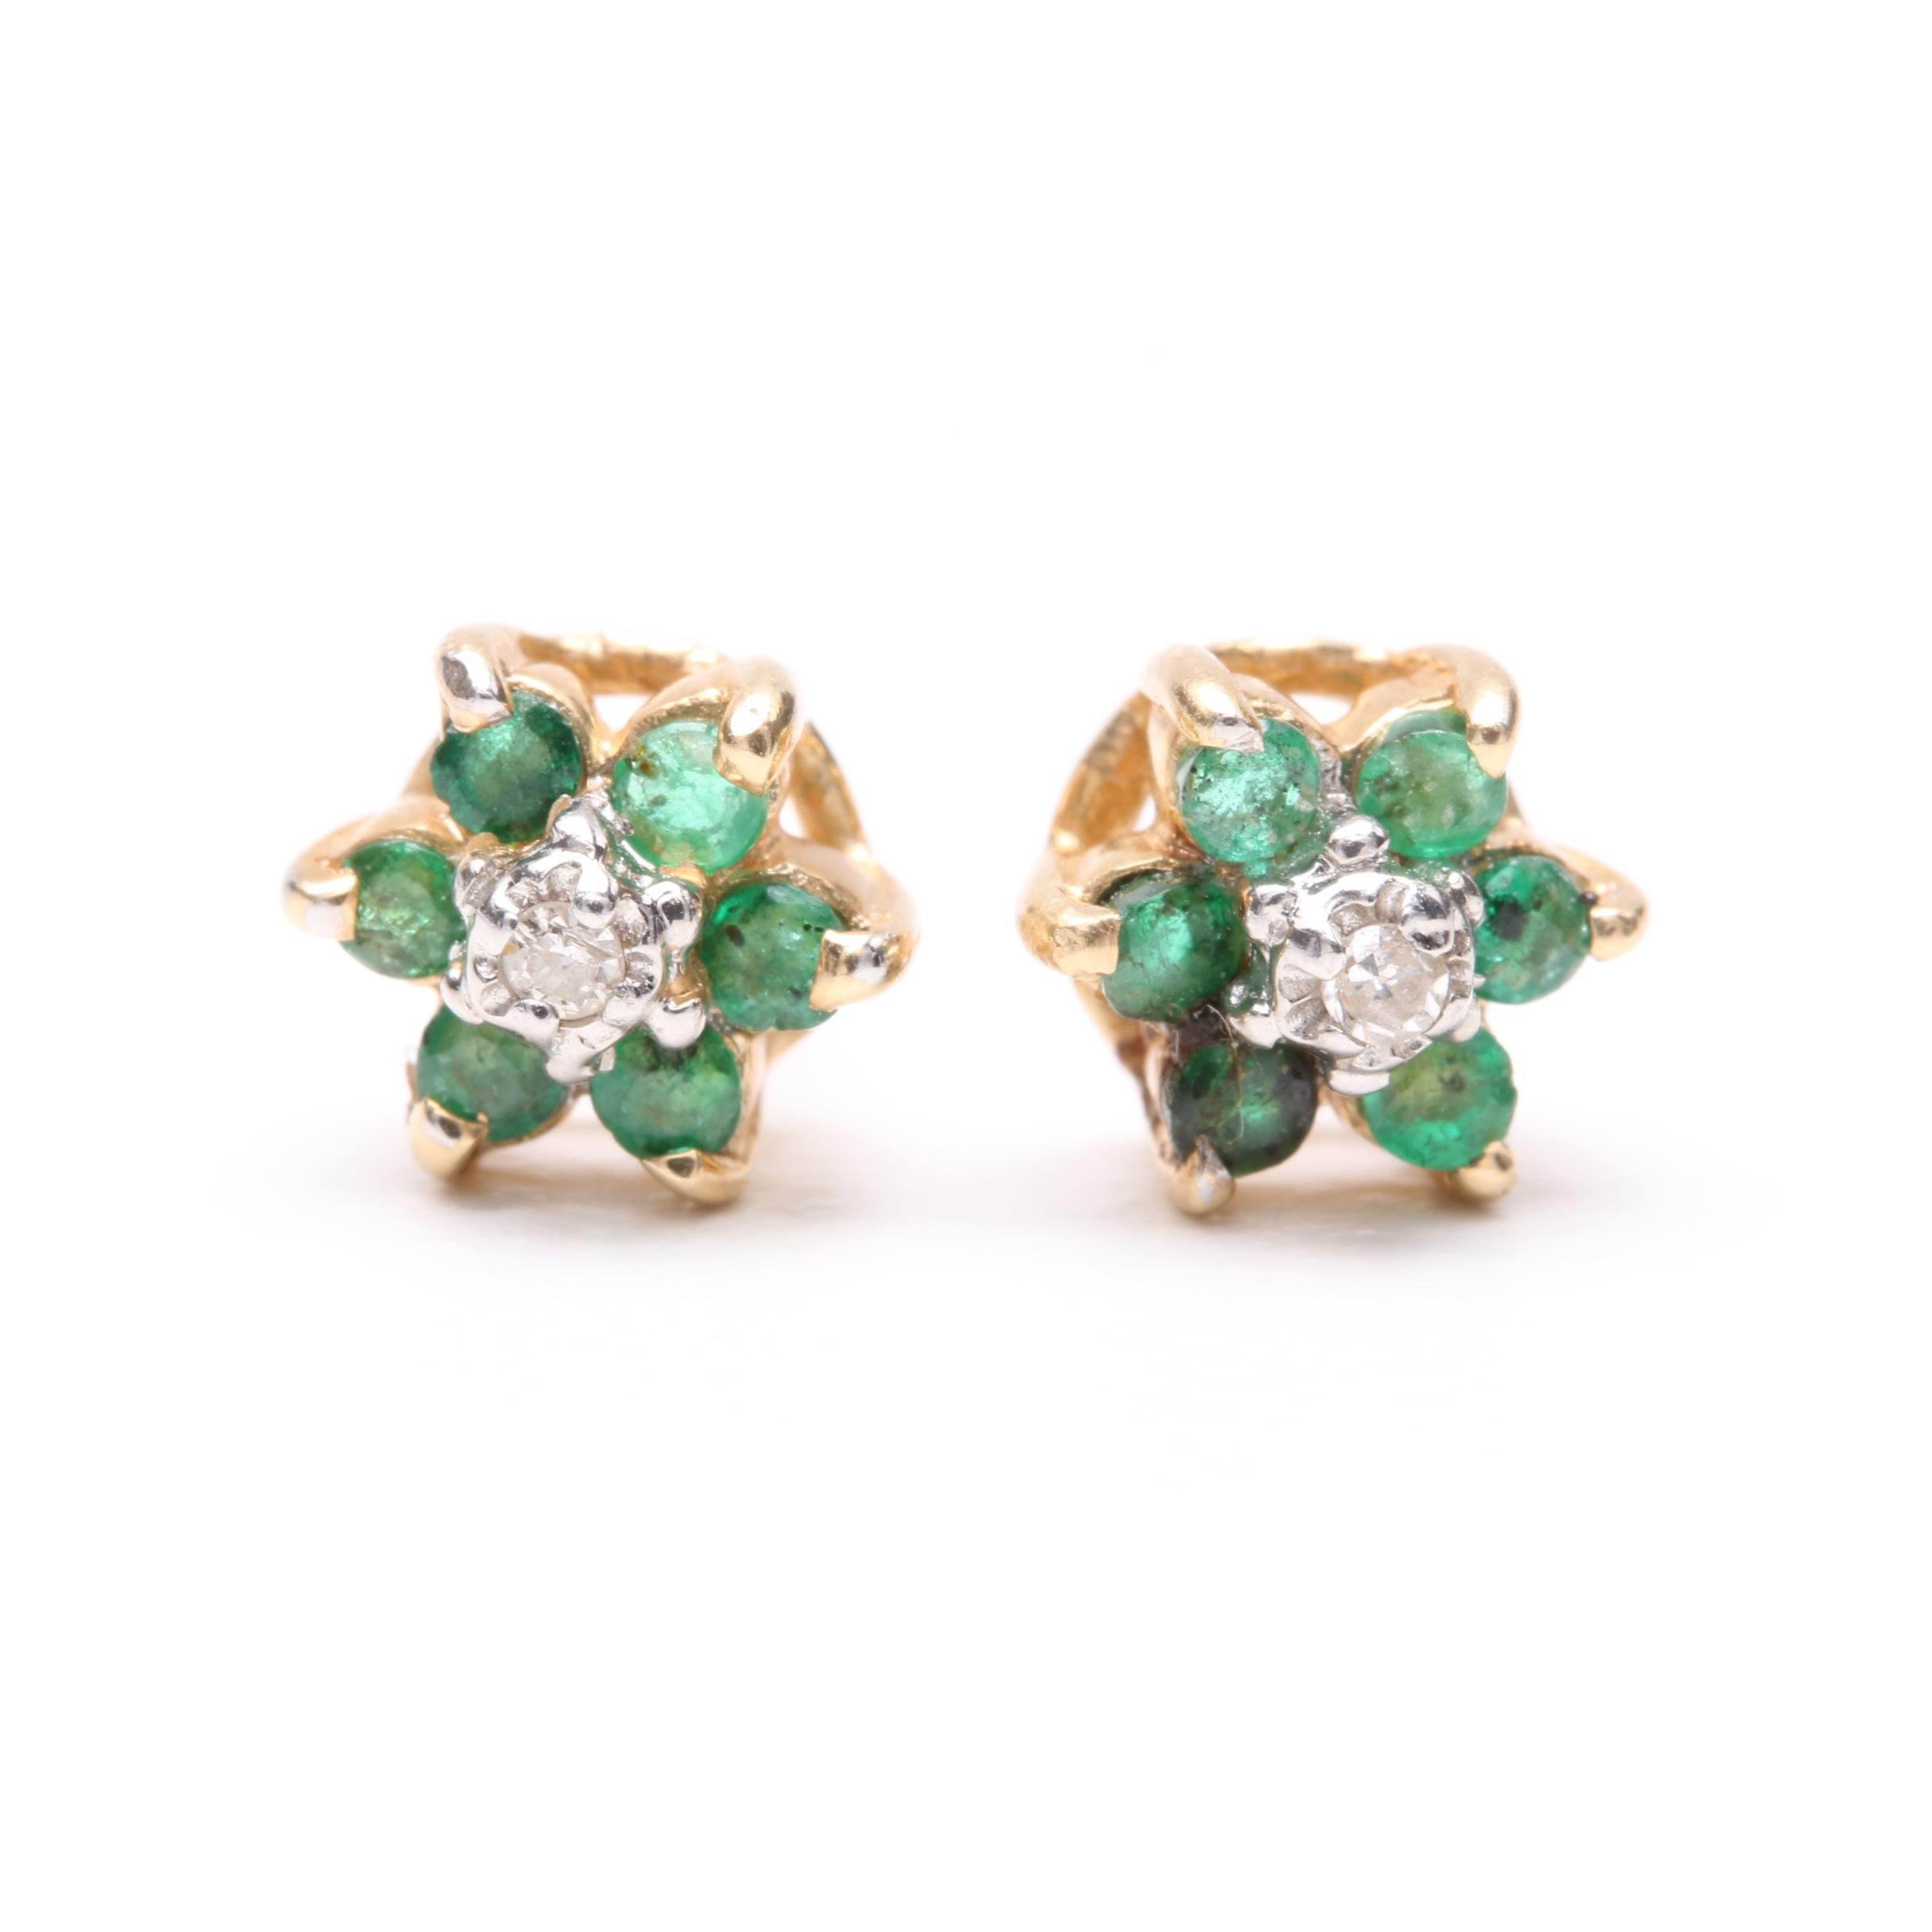 14K Yellow Gold Diamond and Emerald Earrings